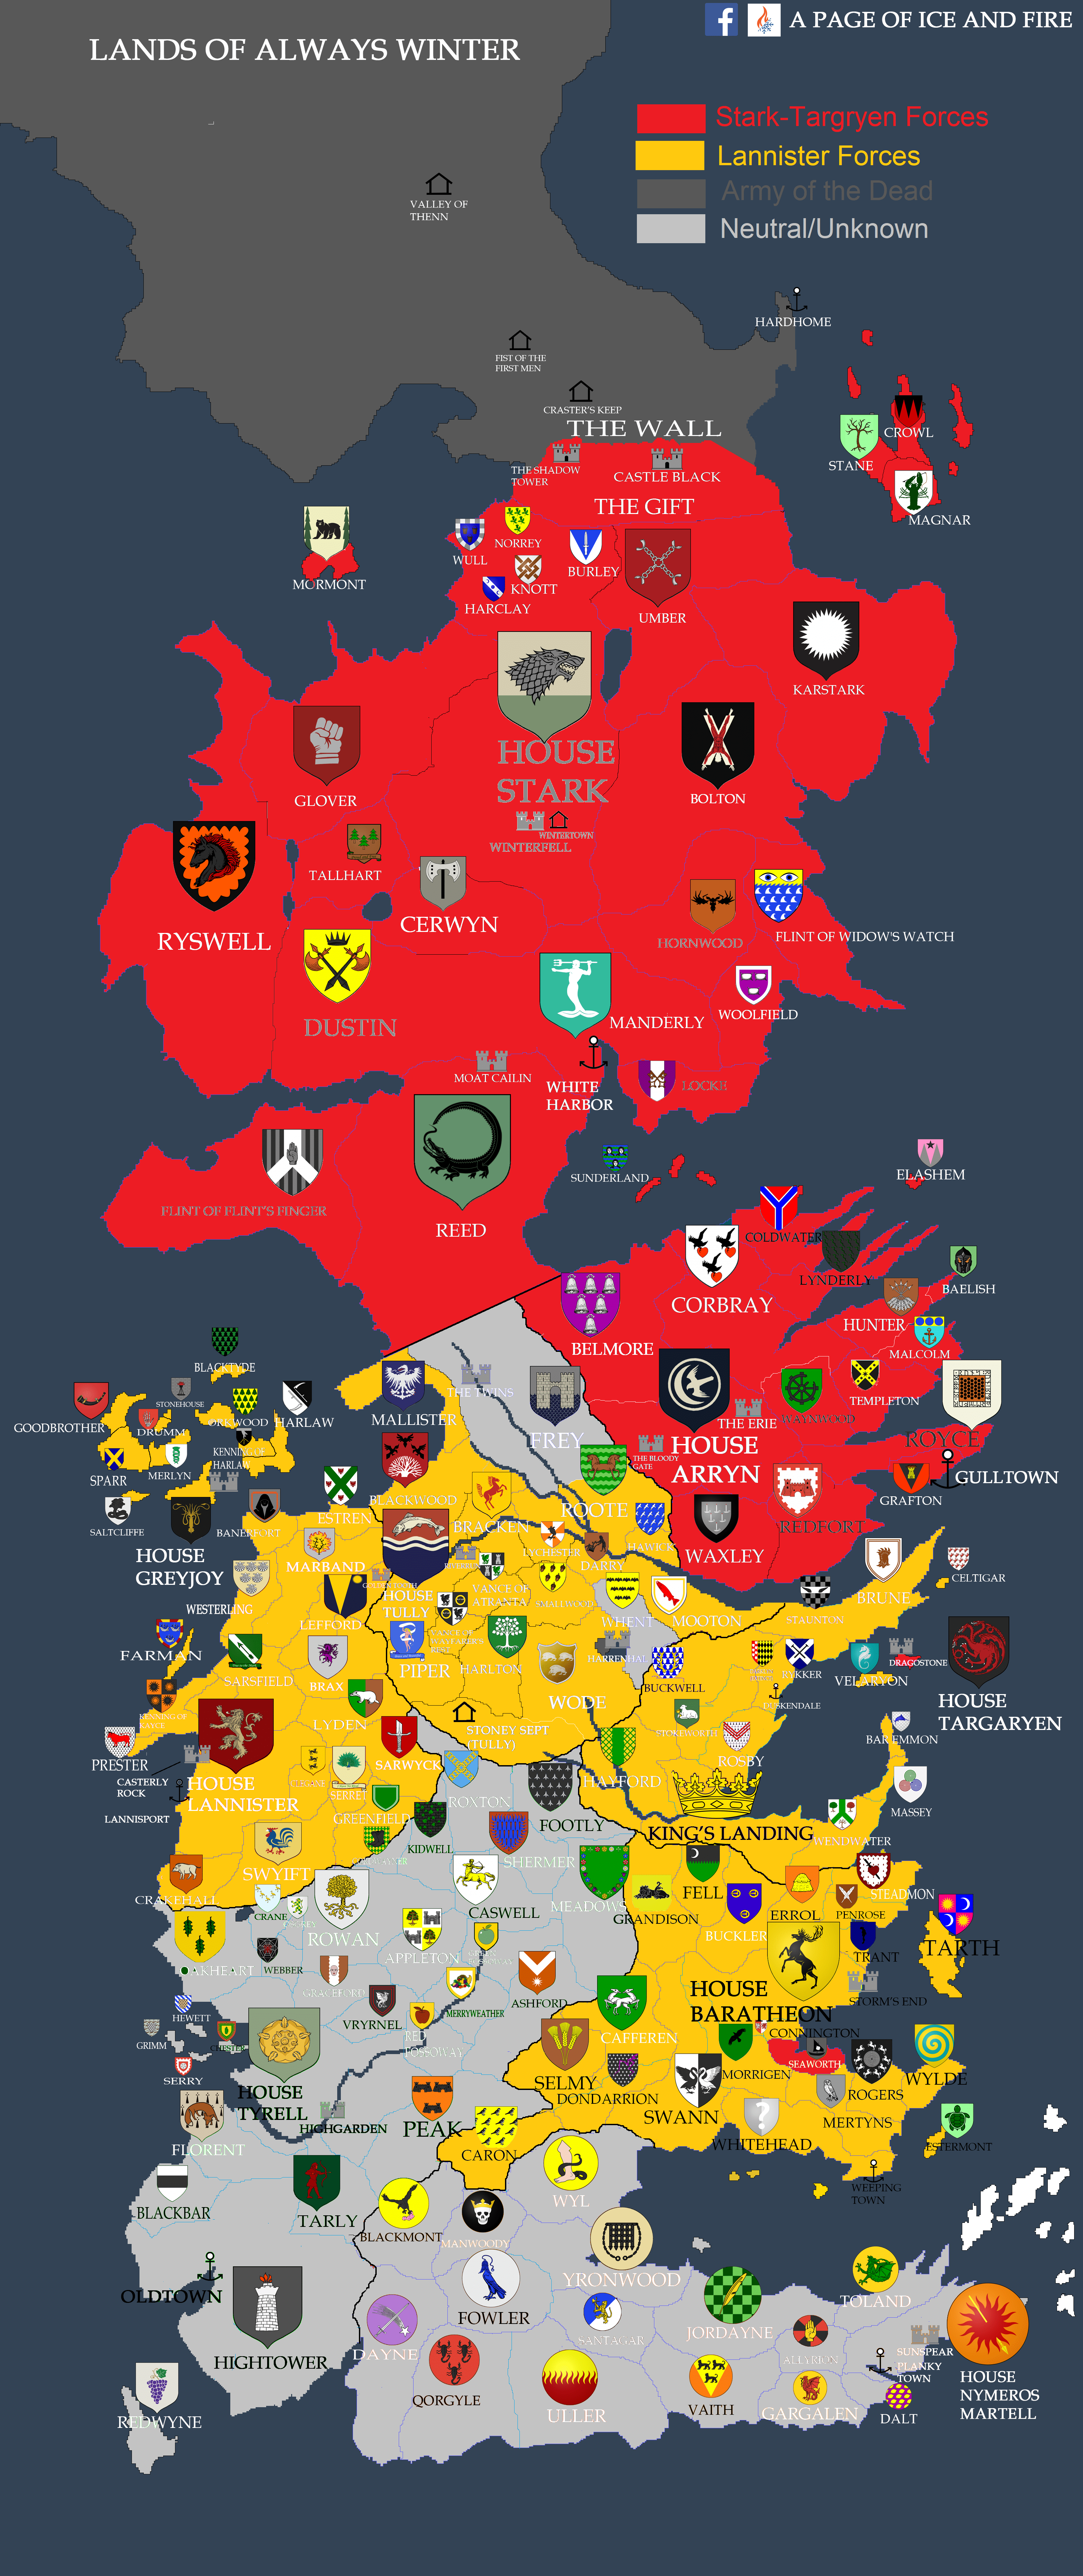 Game Of Thrones Houses Map : thrones, houses, SPOILERS], Political, Westeros, Gameofthrones